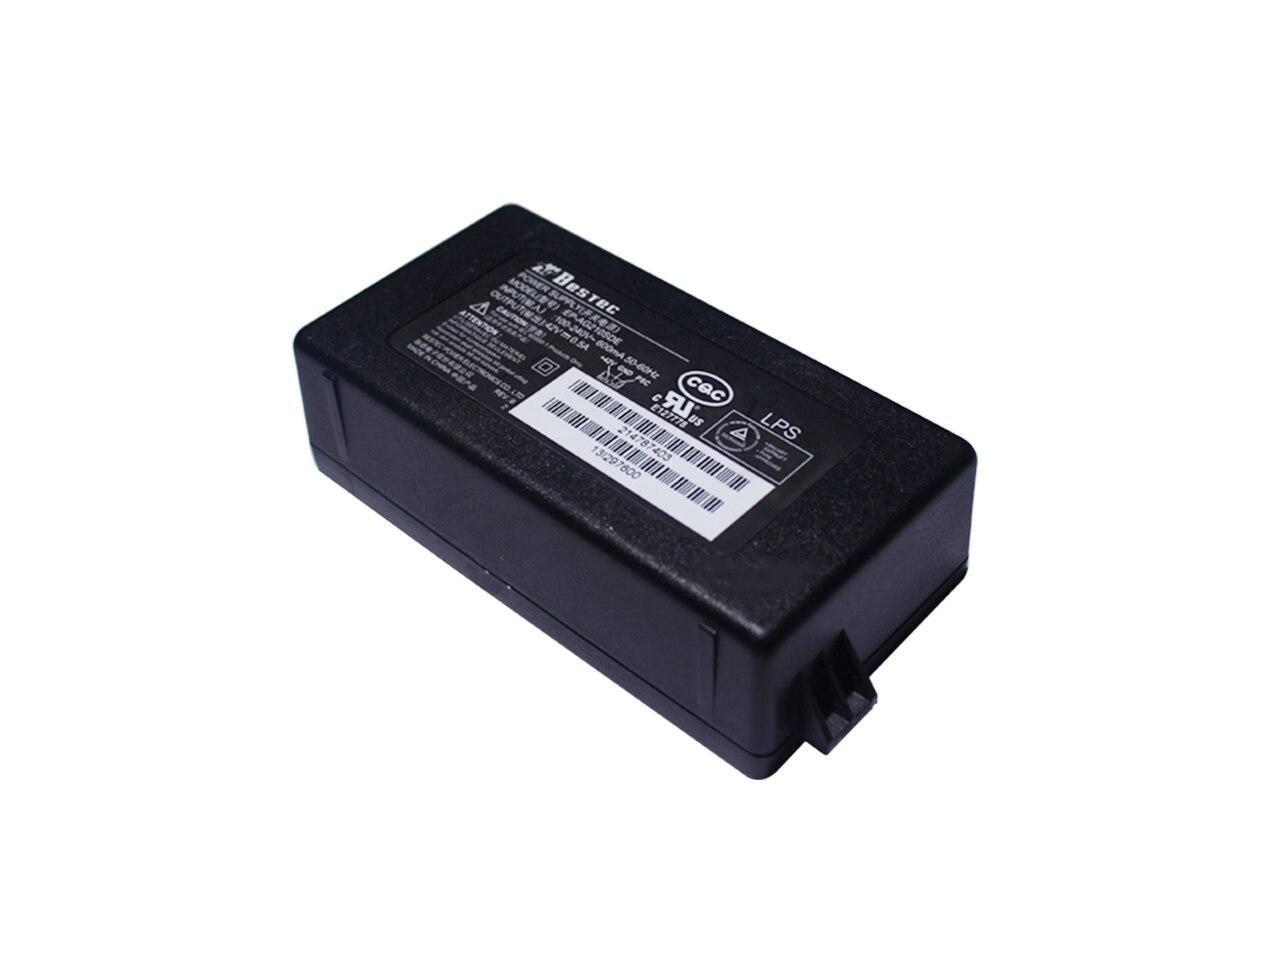 Ac Power Supply Adapter Charger For Epson L110 L120 L210 L220 L300 L310 L350 L355 L360 L365 L455 L555 L565 L100 L132 L130 L222 Newegg Com